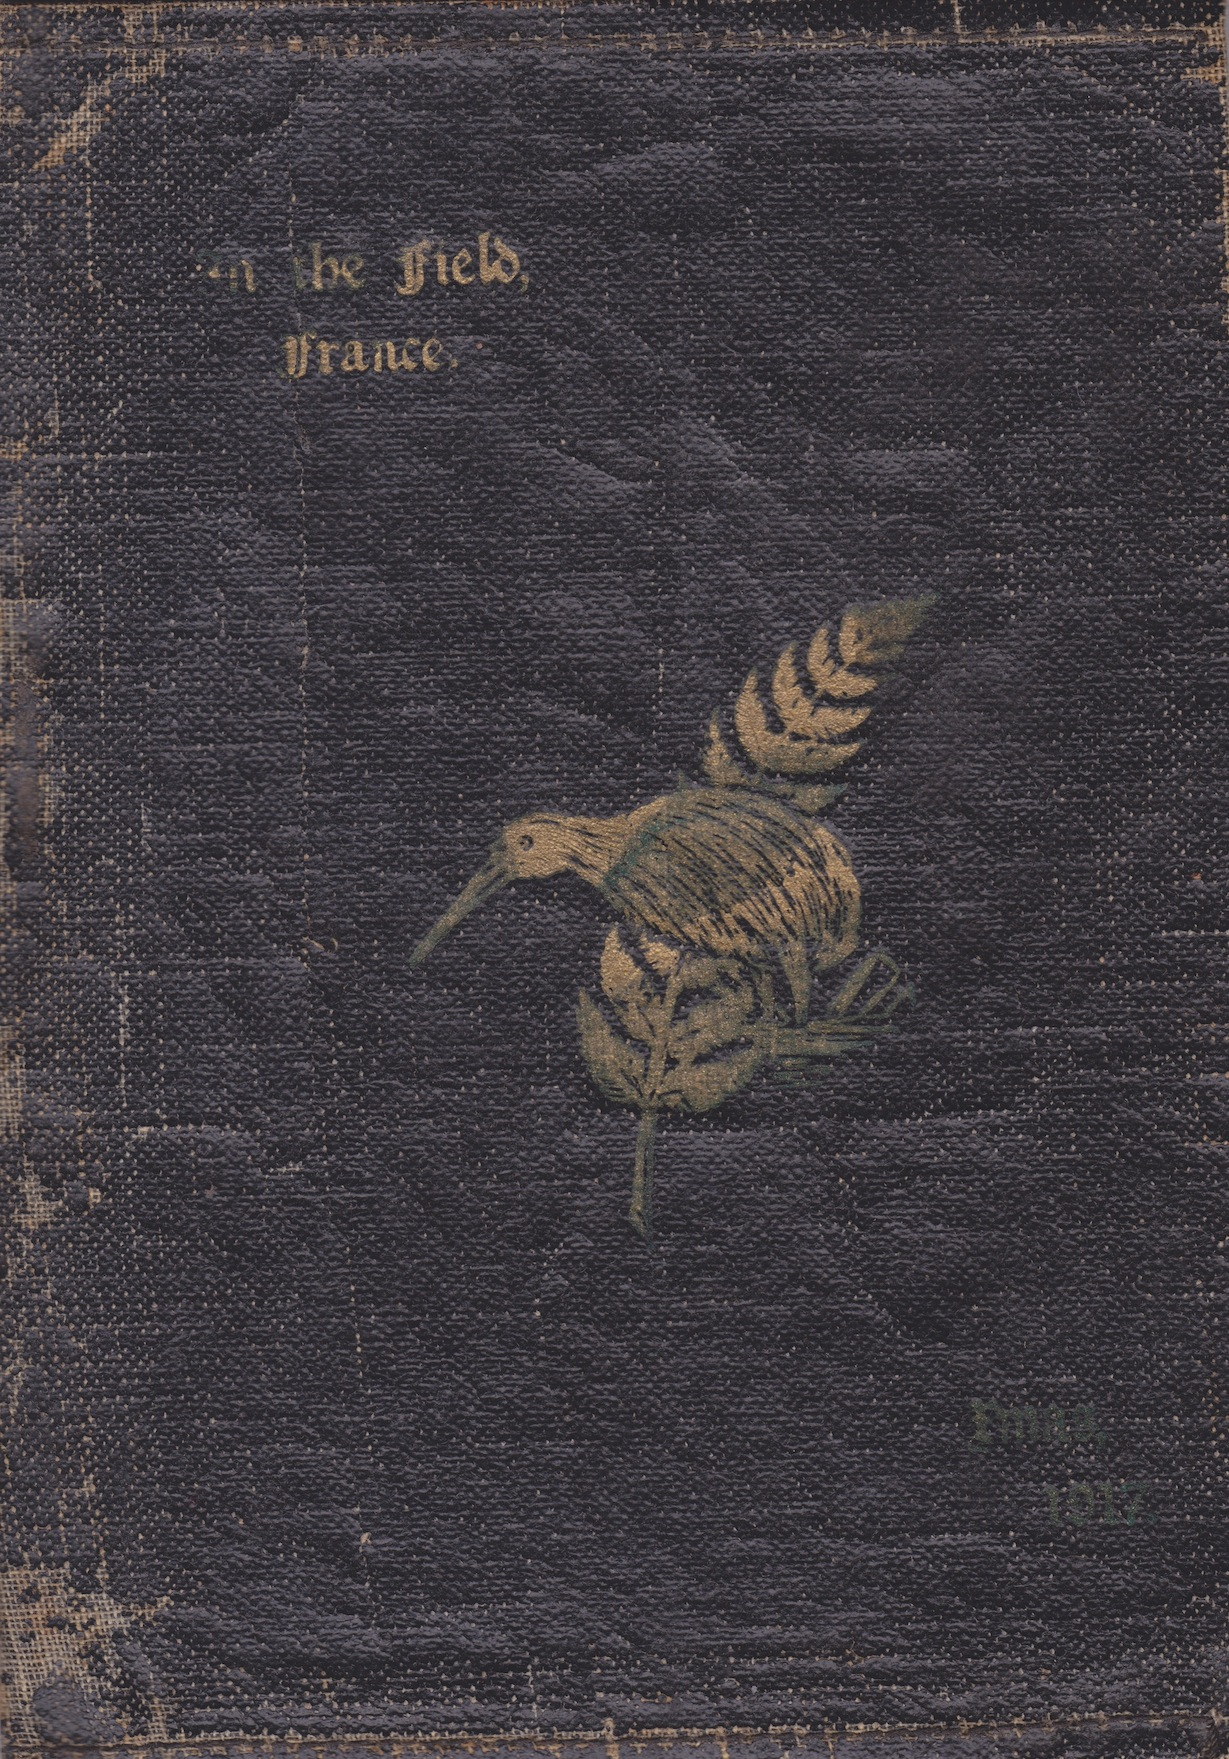 Silver Fern and Kiwi on cover of First World War stationary kit Lemuel Lyes Collection